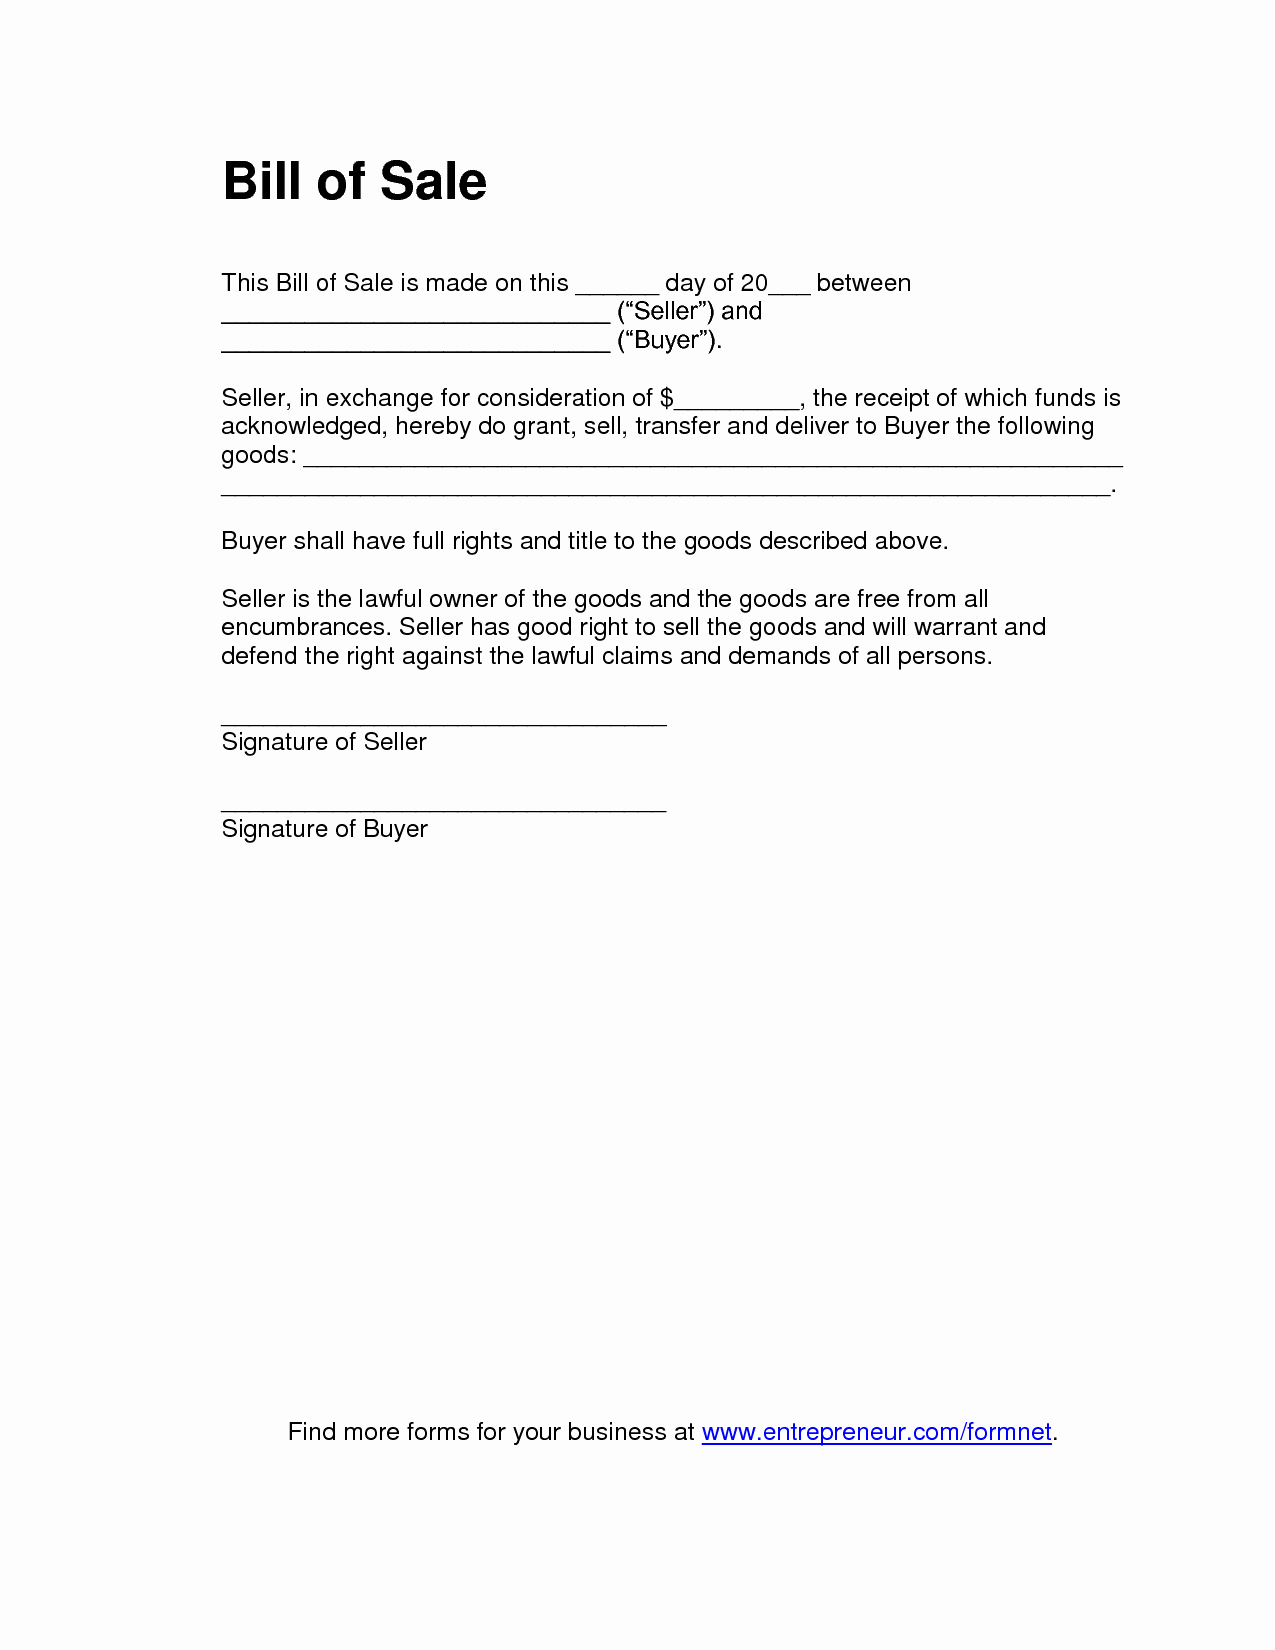 Bill Of Sale Printable Free Awesome Free Printable Bill Of Sale Templates form Generic